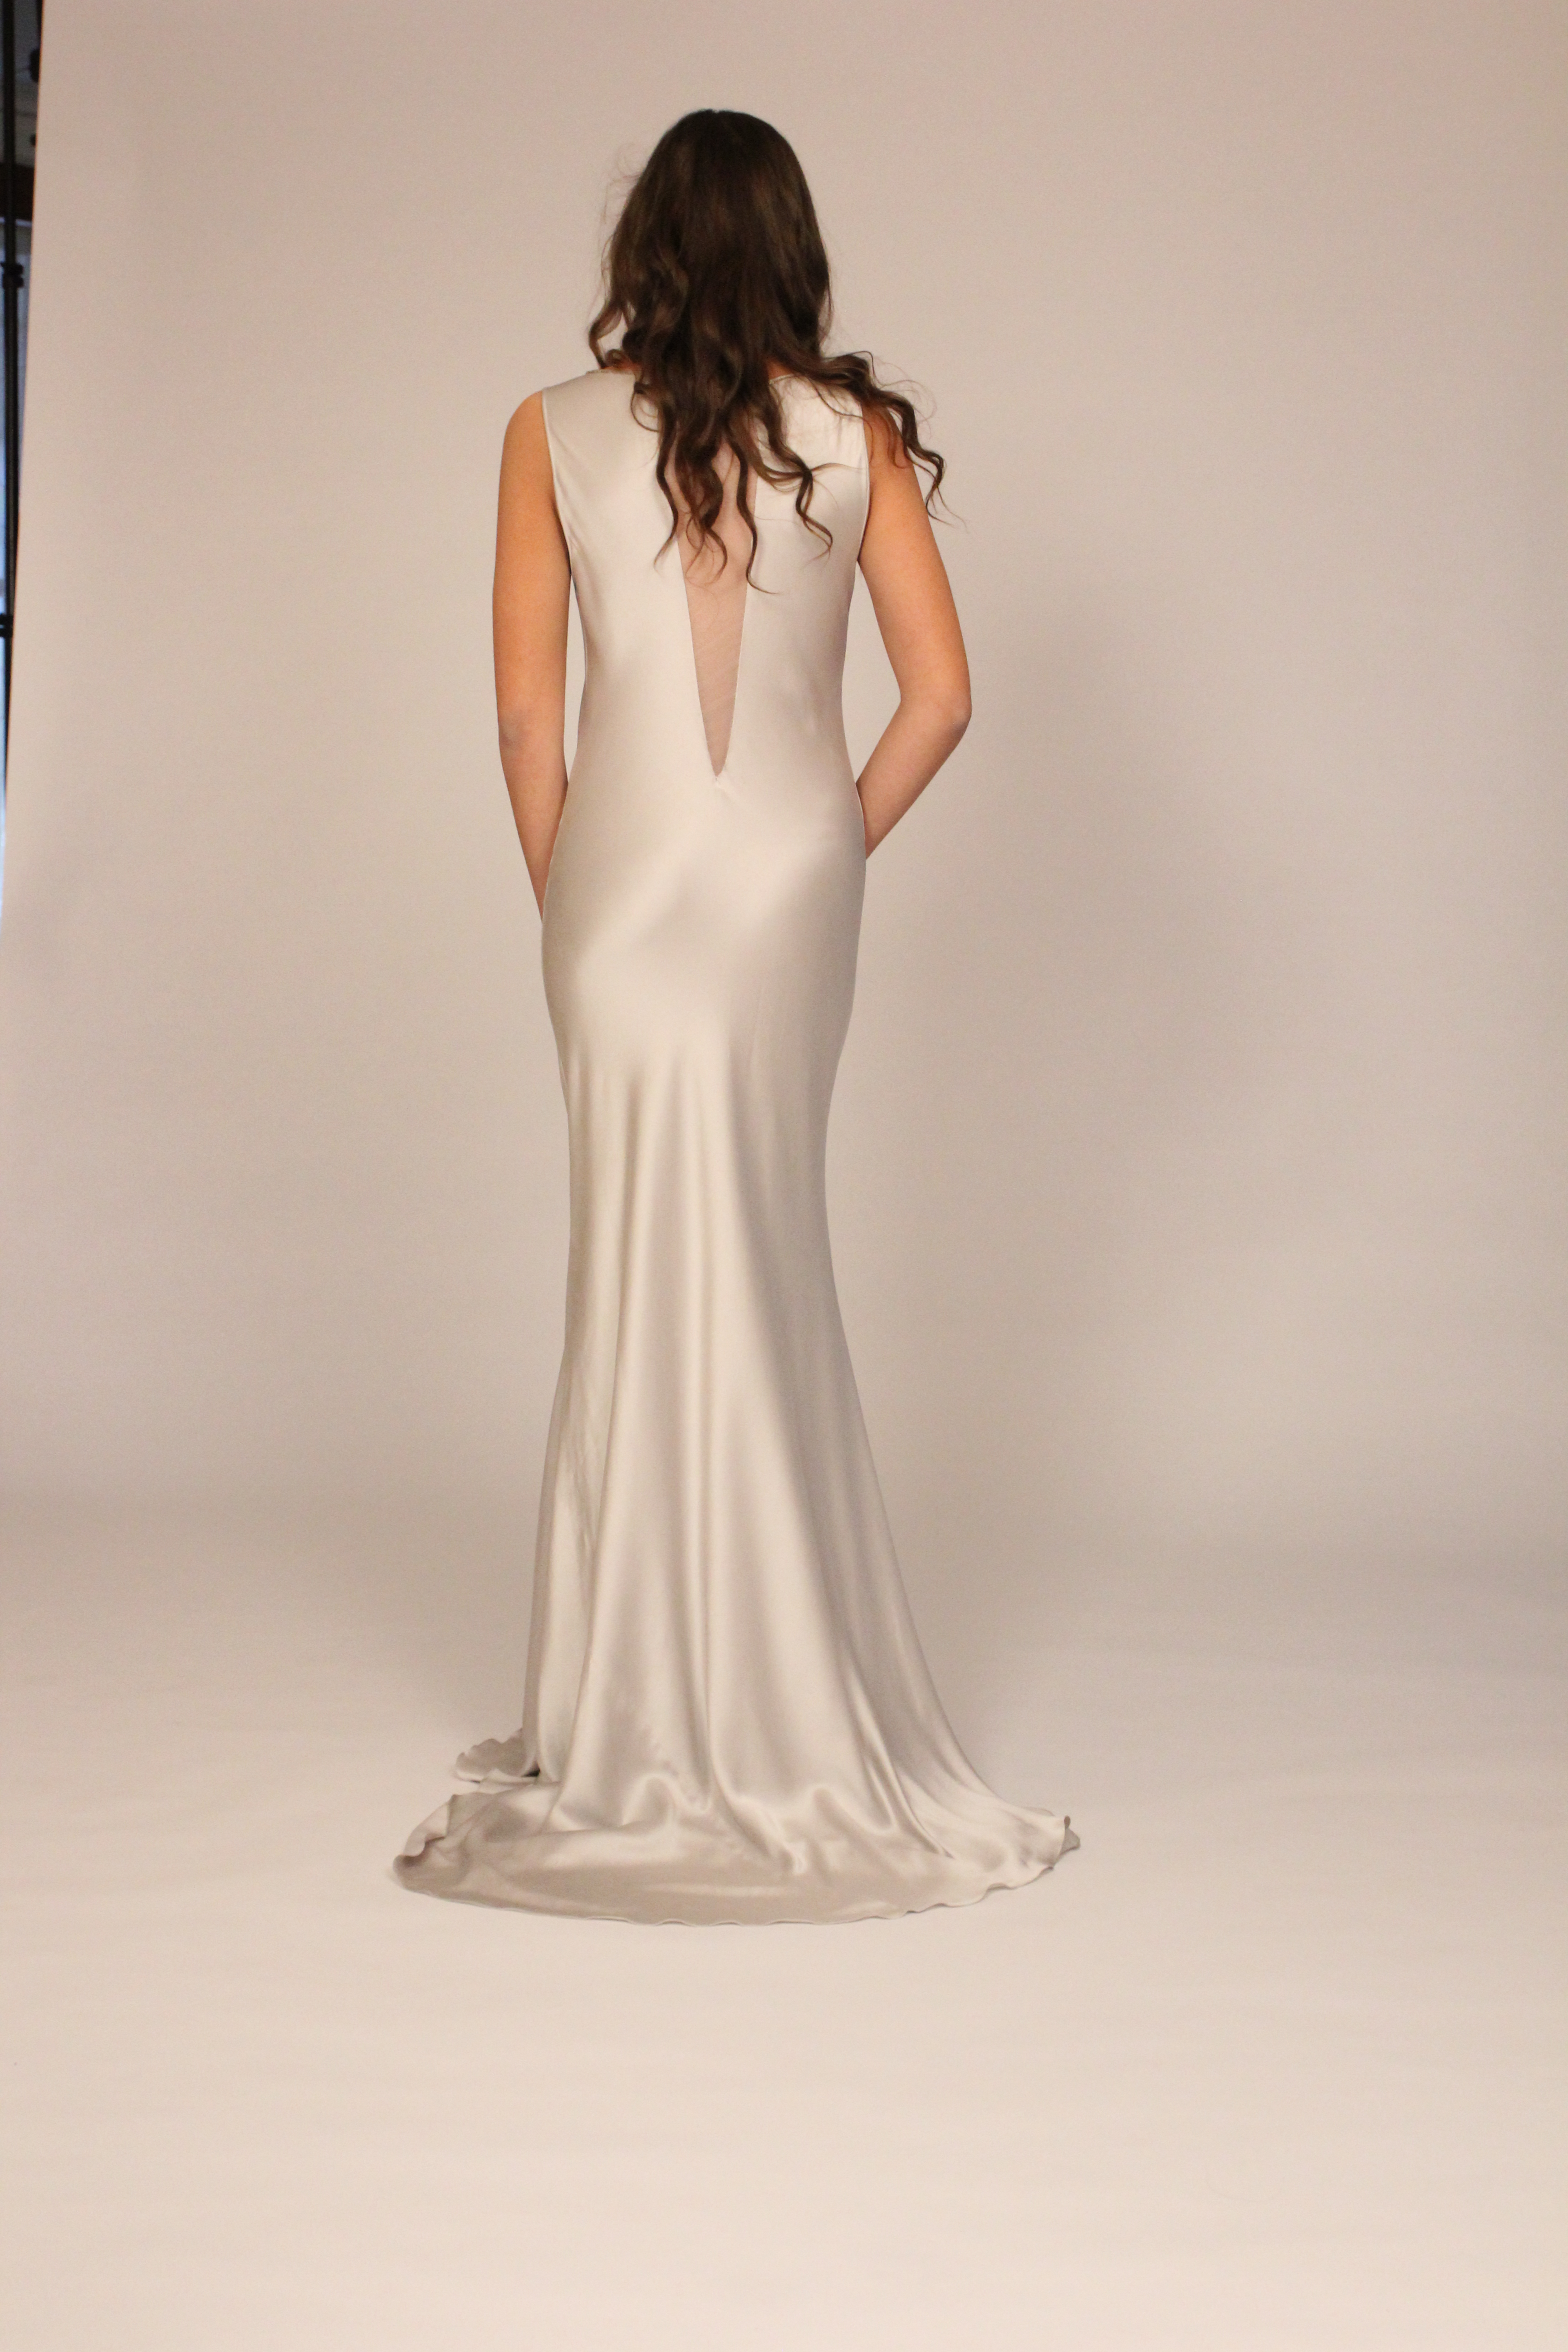 silver bias nude neckline gown back